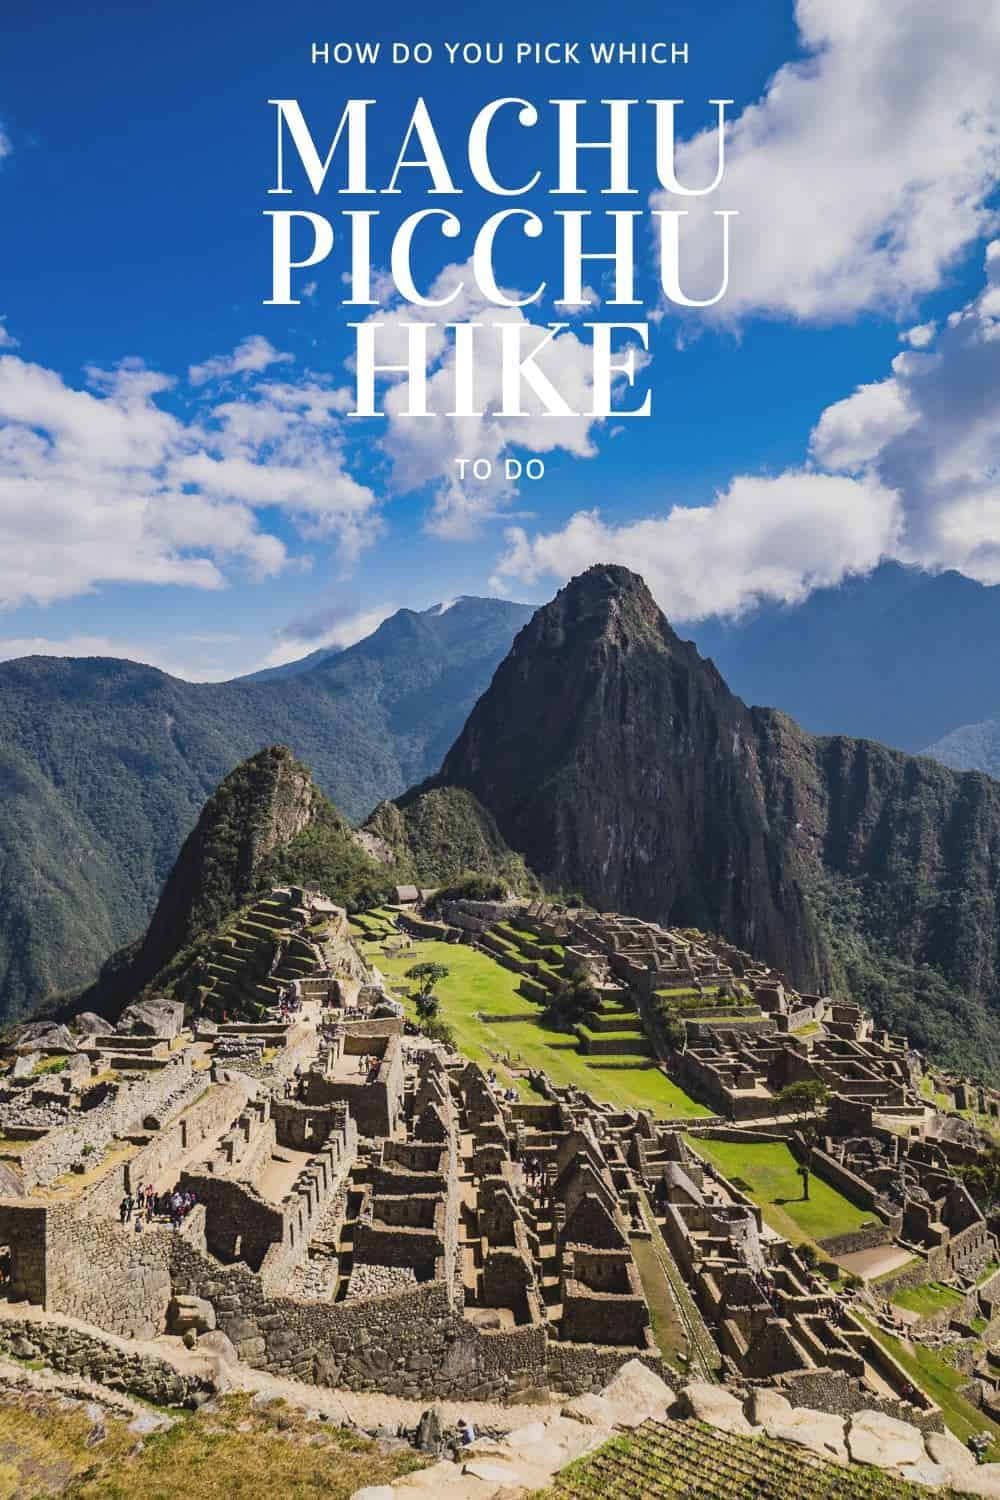 How to Pick Which Machu Picchu Hike To Do